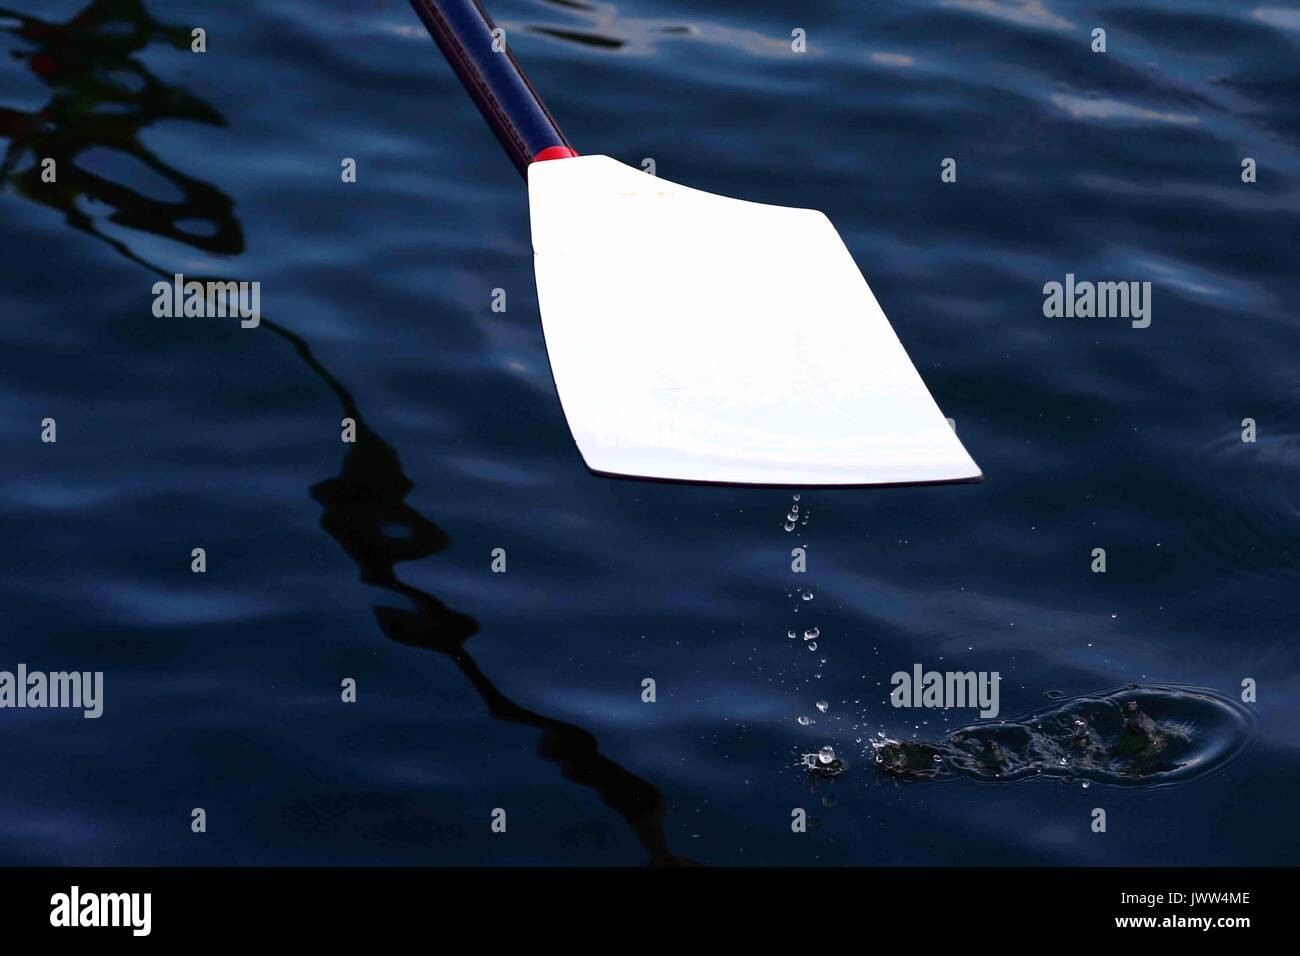 Peterborough, Cambridgeshire UK. 13th August, 2017. Water drips from an oar blade at the Peterborough Rowing Club Summer Regatta, Peterborough, Cambridgeshire UK on August 13, 2017 Credit: Paul Marriott/Alamy Live News - Stock Image